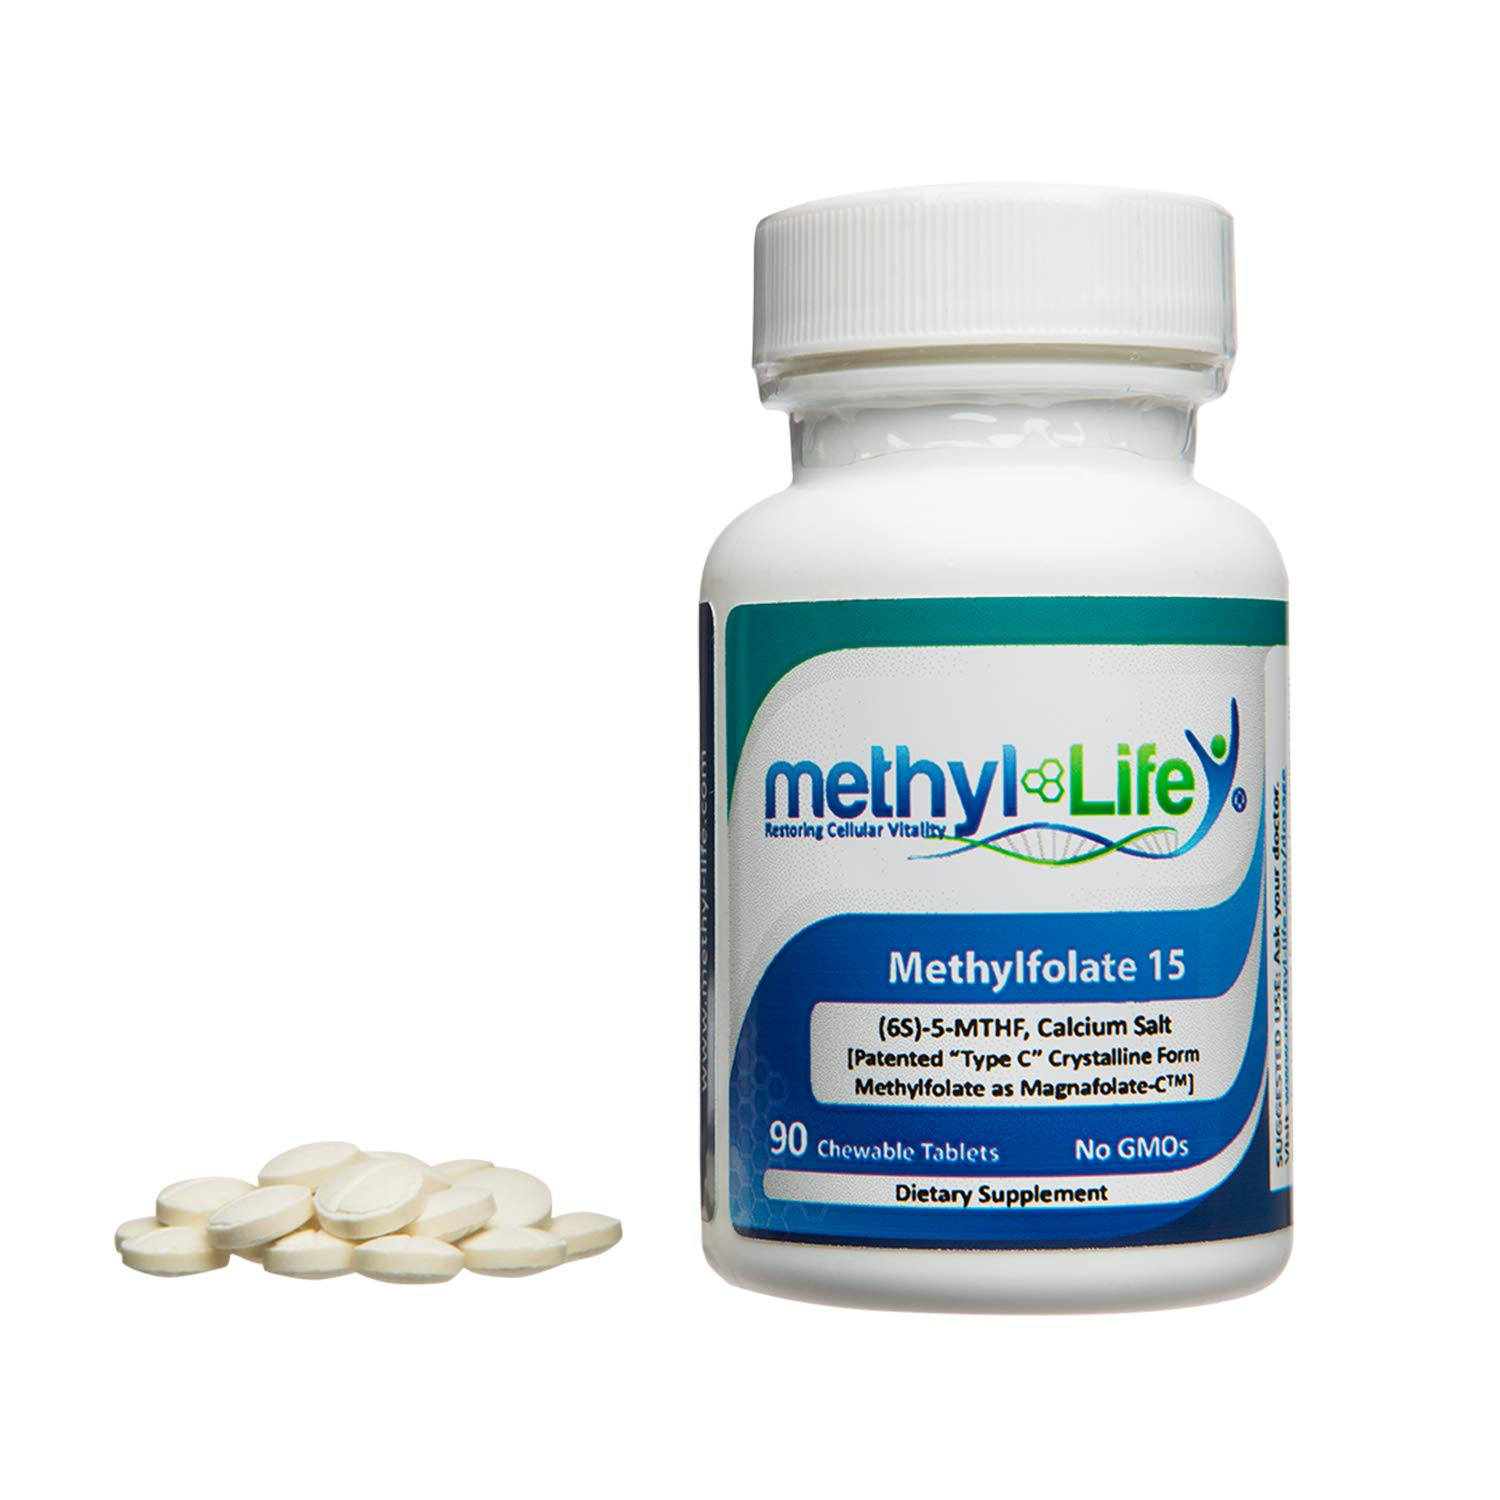 Methylfolate 15 by Methyl-Life|L-5-MTHF, (or (6S)-5-Methylfolate) calcium salt (15 mg per tablet) - 90 Chewable Tablets